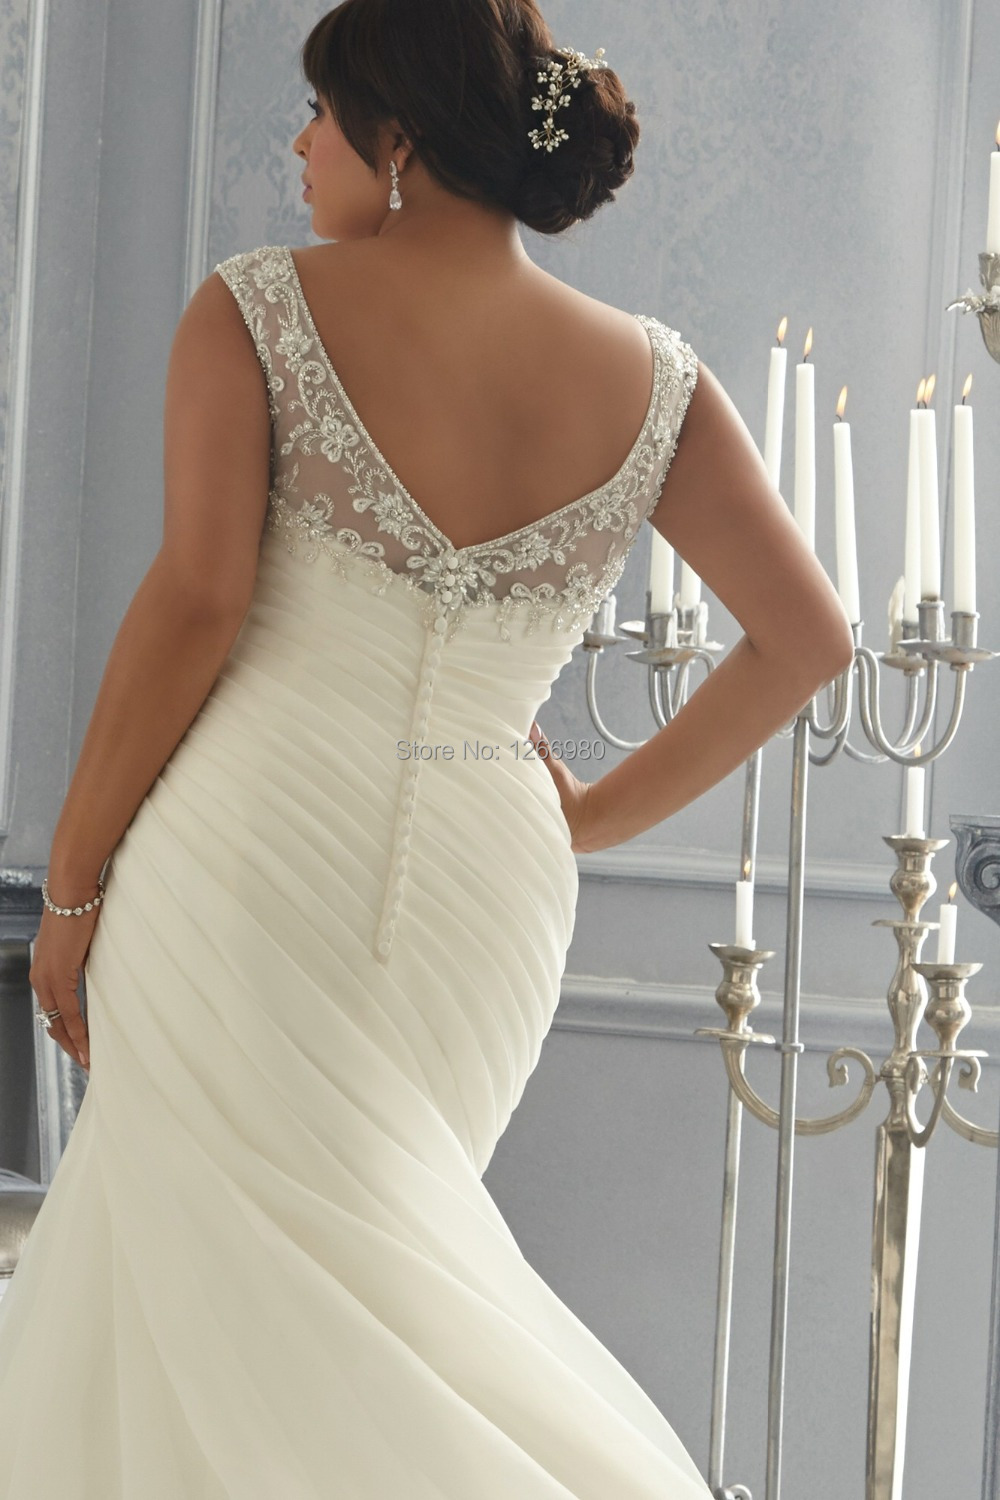 2014 New Design Mermaid Boat Neck Sheer Top Appliqued Open Back Fat Size Wedding Dress For Big Women Gowns Bride In Dresses From